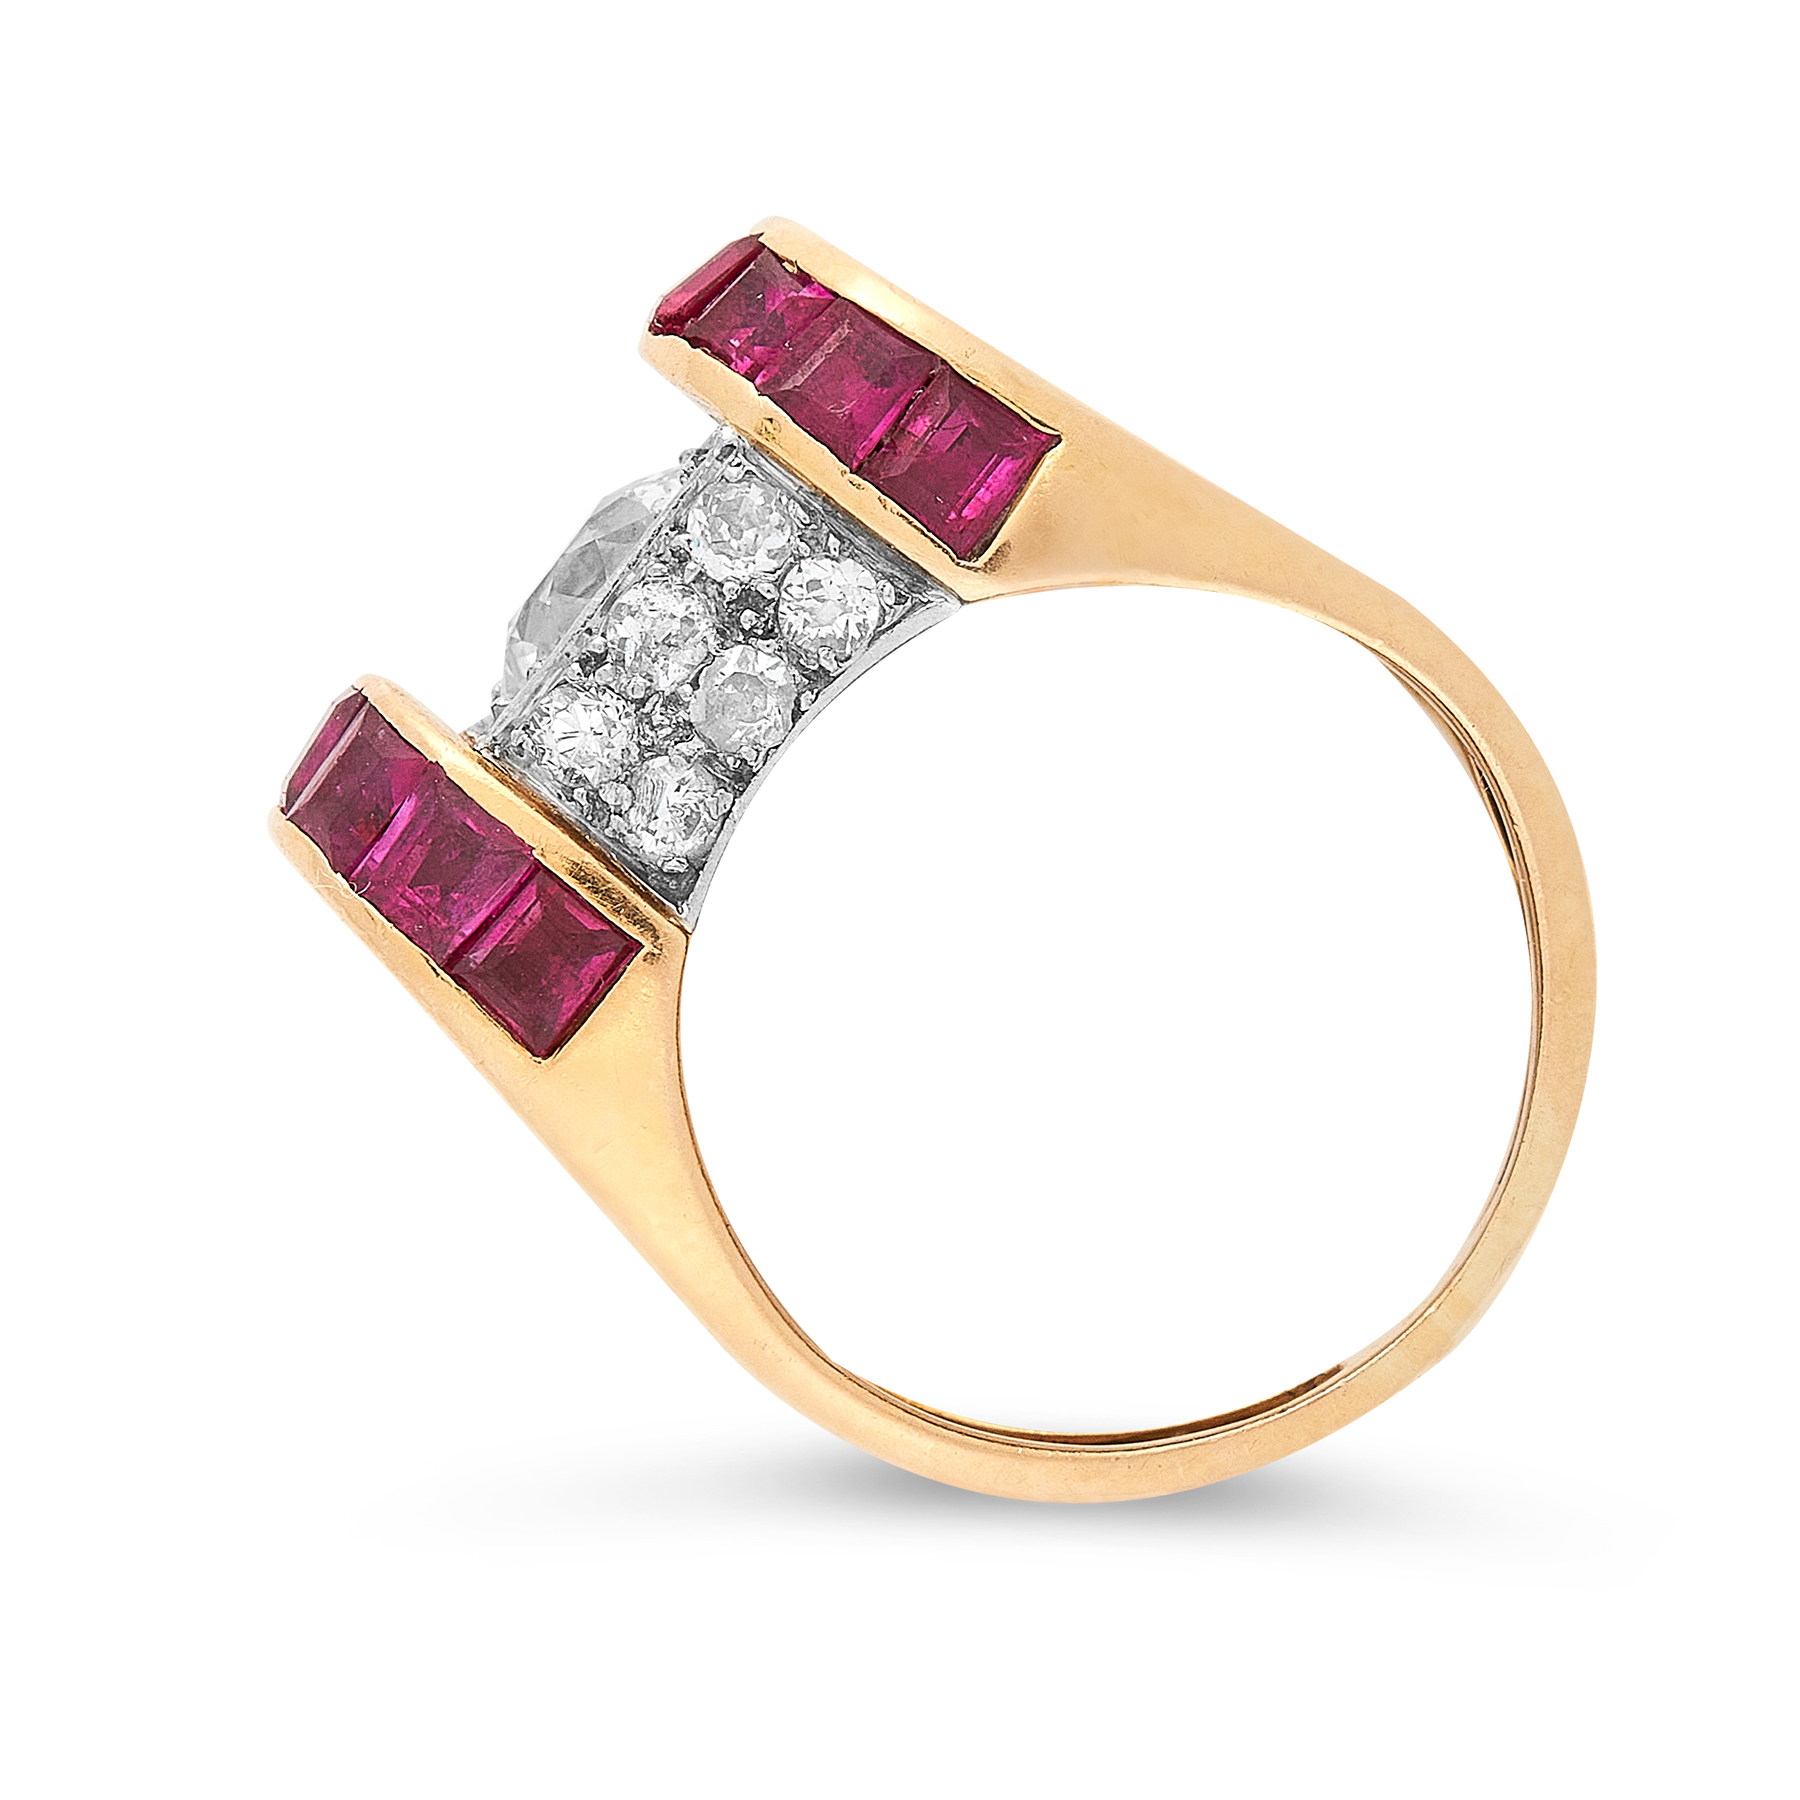 A RETRO DIAMOND AND RUBY RING CIRCA 1945 in 18ct yellow gold, set with an old cut diamond of 1.38 - Image 2 of 2